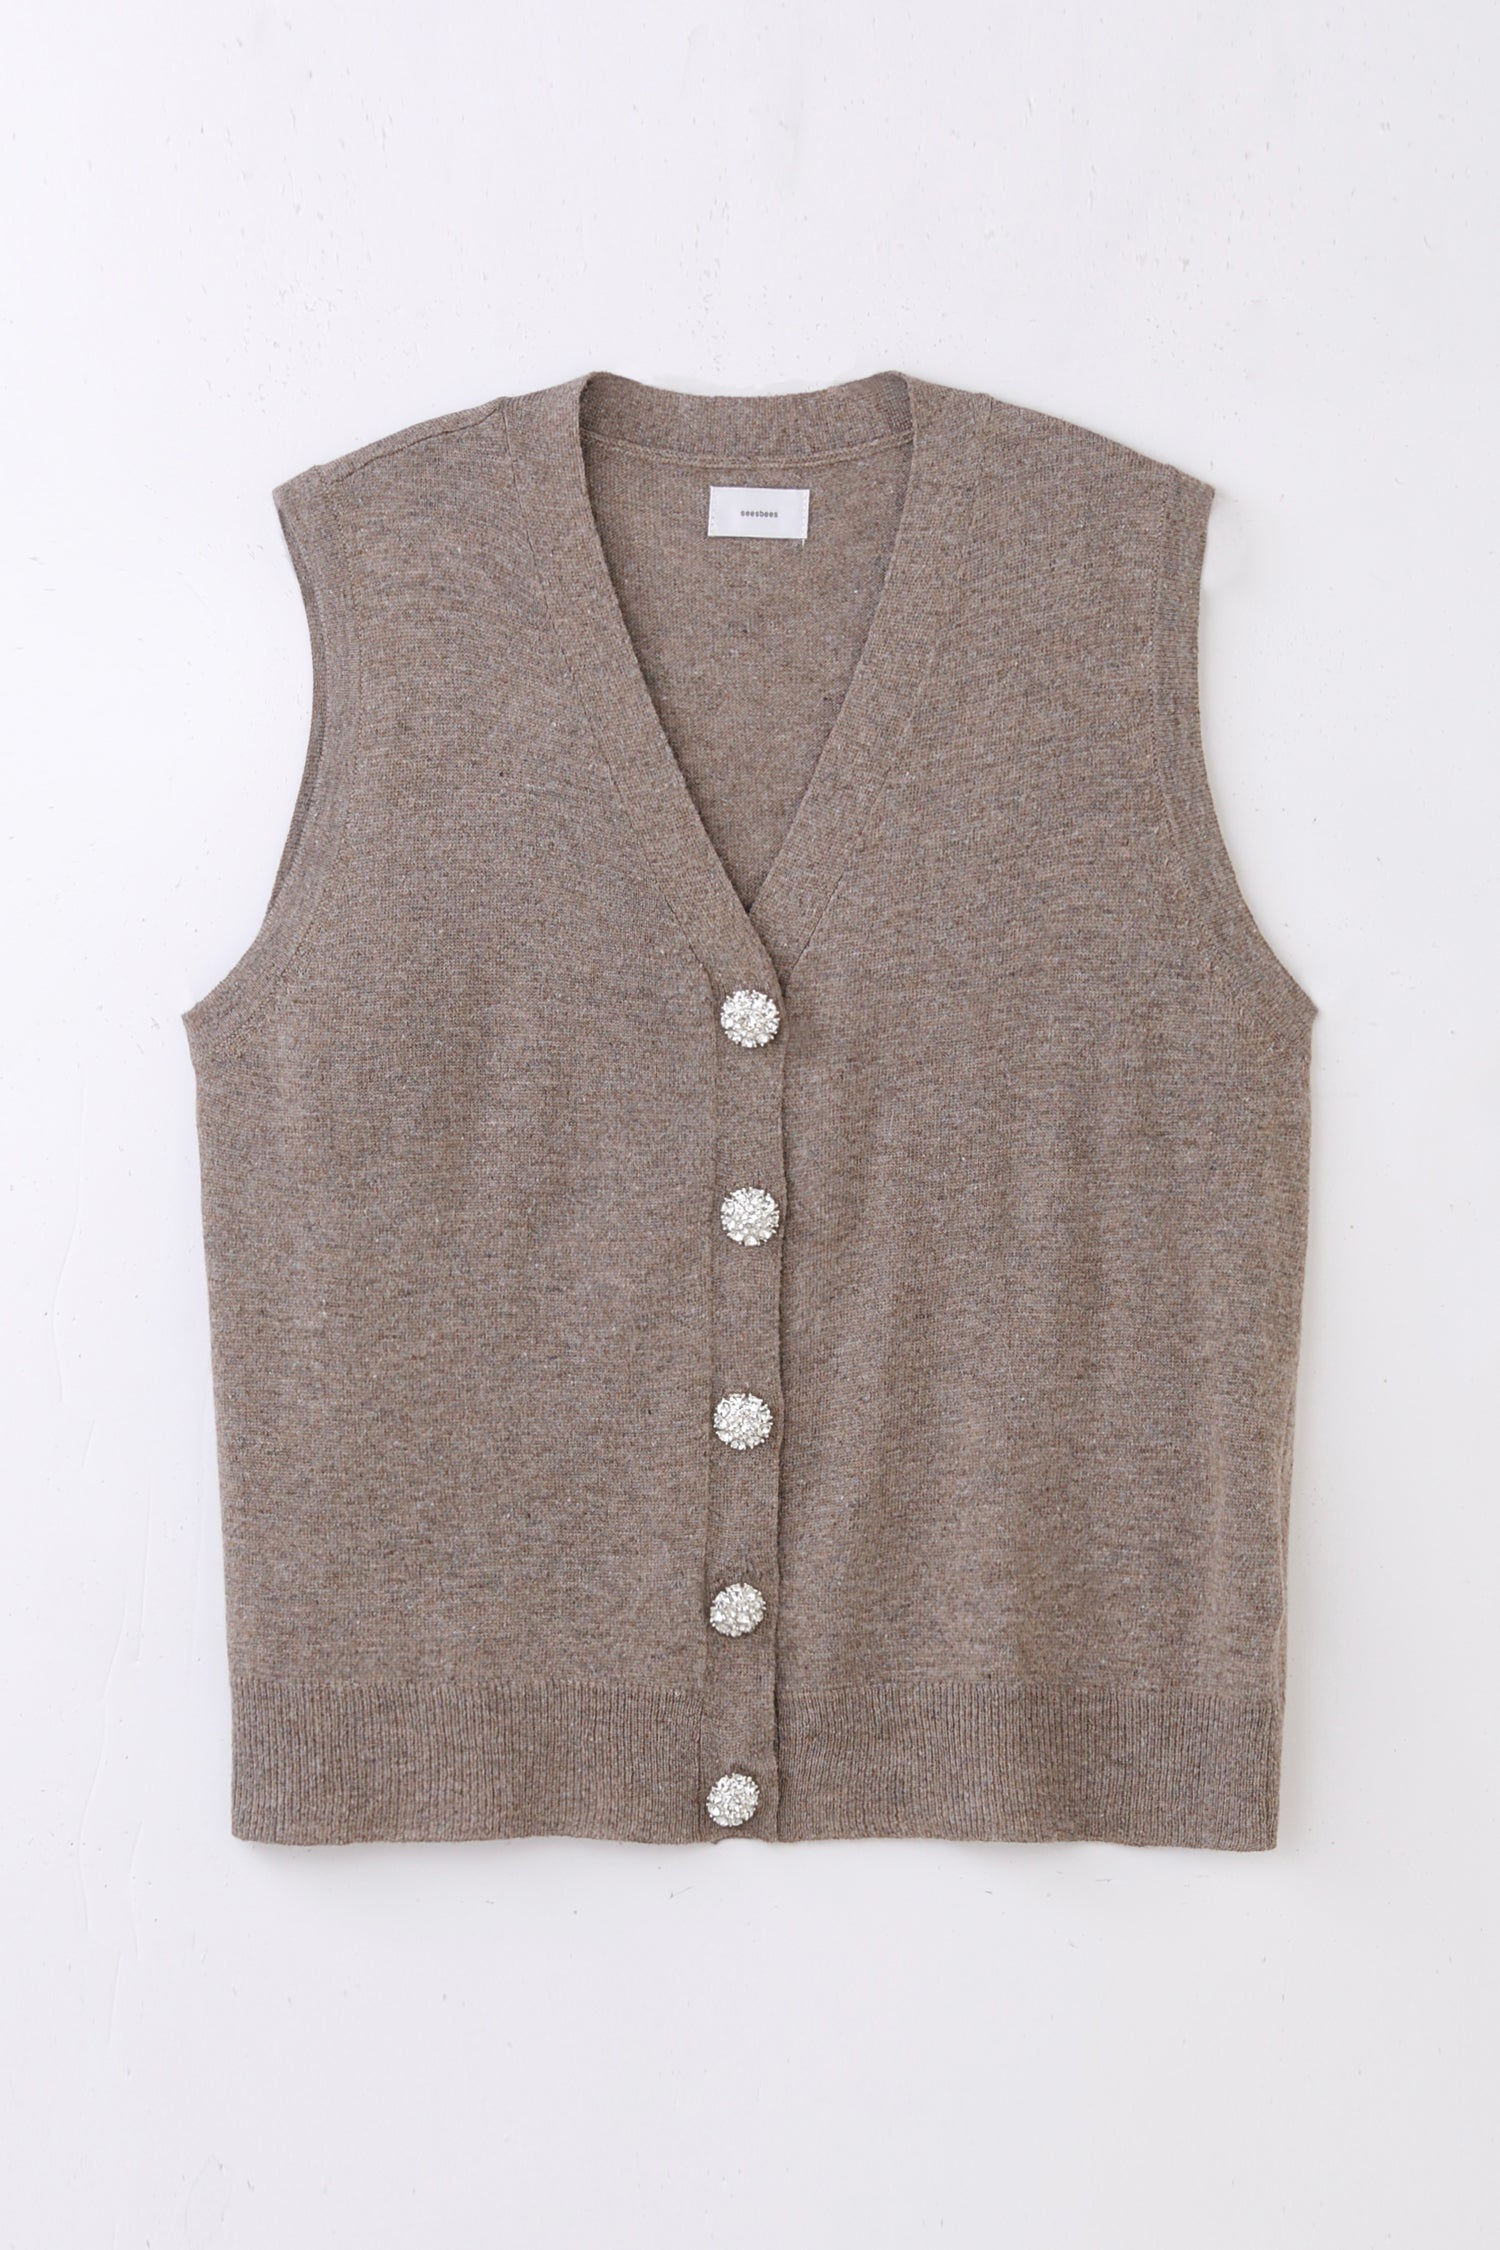 jewelry button knit vest -beige-